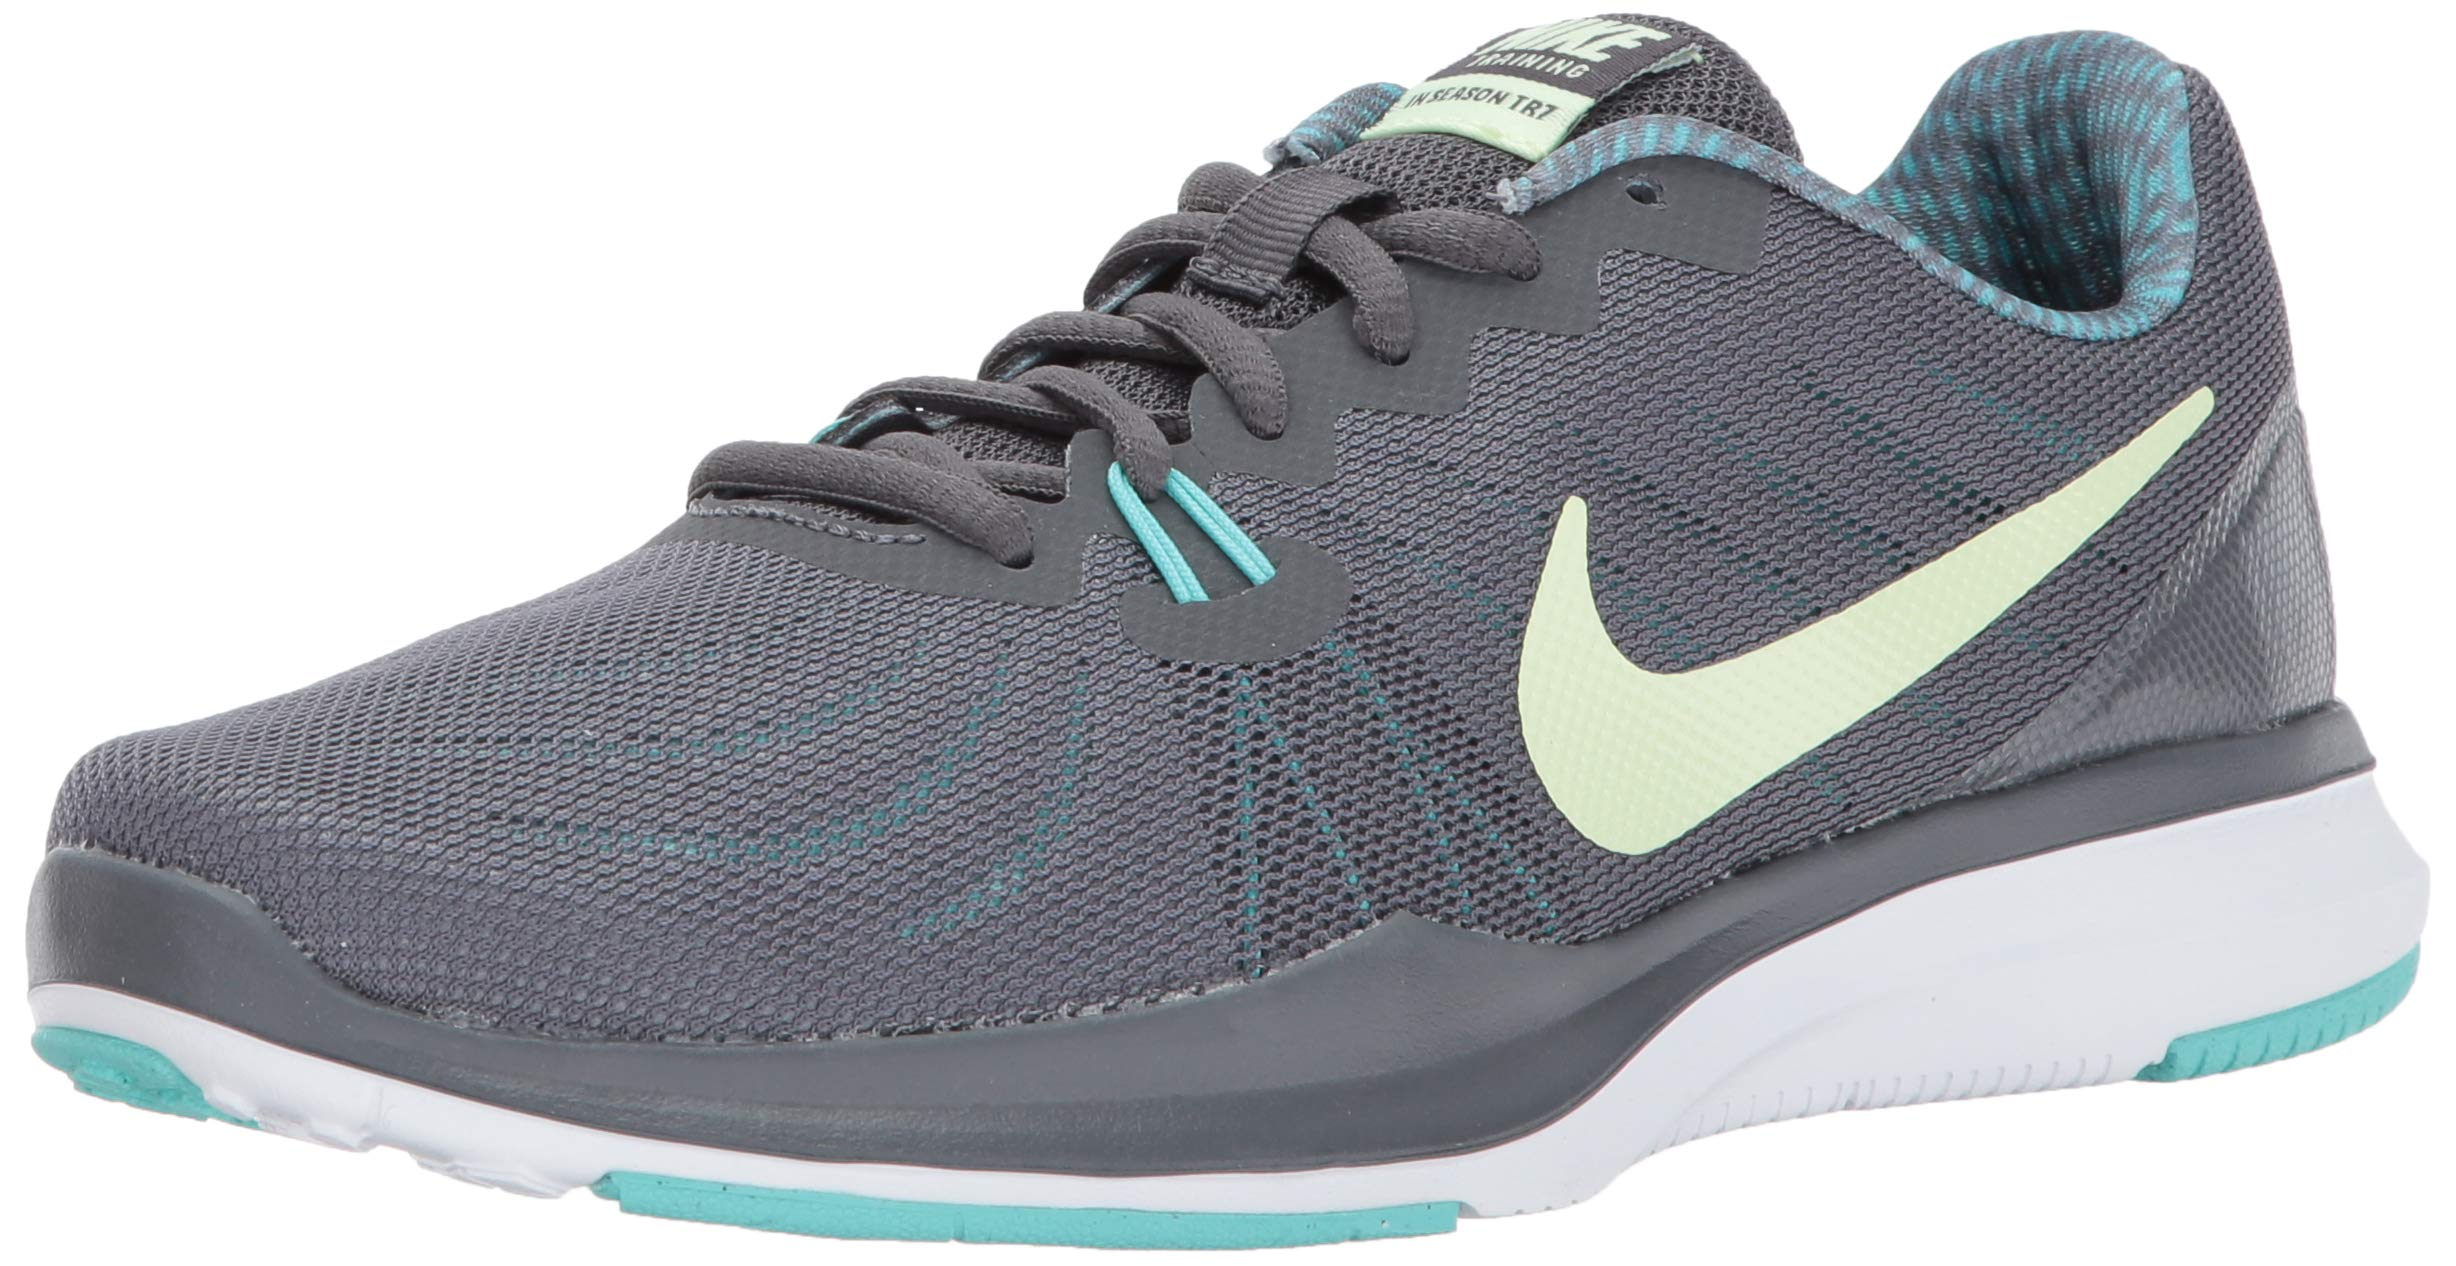 Nike Women's in-Season Trainer 7 Cross, Dark Grey/Barely Volt - Aurora Green, 10.0 Regular US